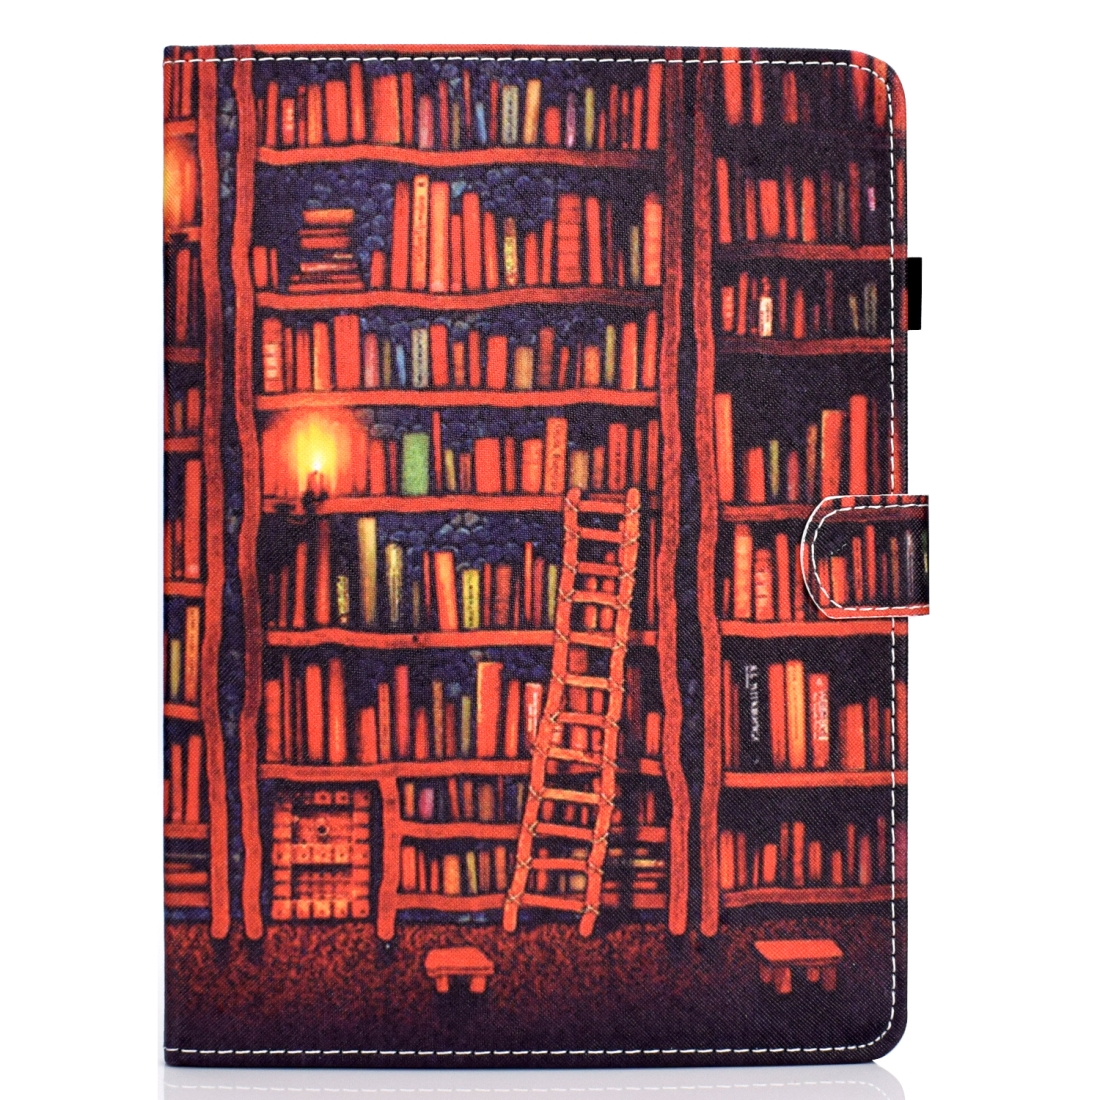 Artsy Leather iPad Air 3 Case (10.5 Inch) 2017/2019 Artsy Design & Auto Sleep Function (Bookshelf)